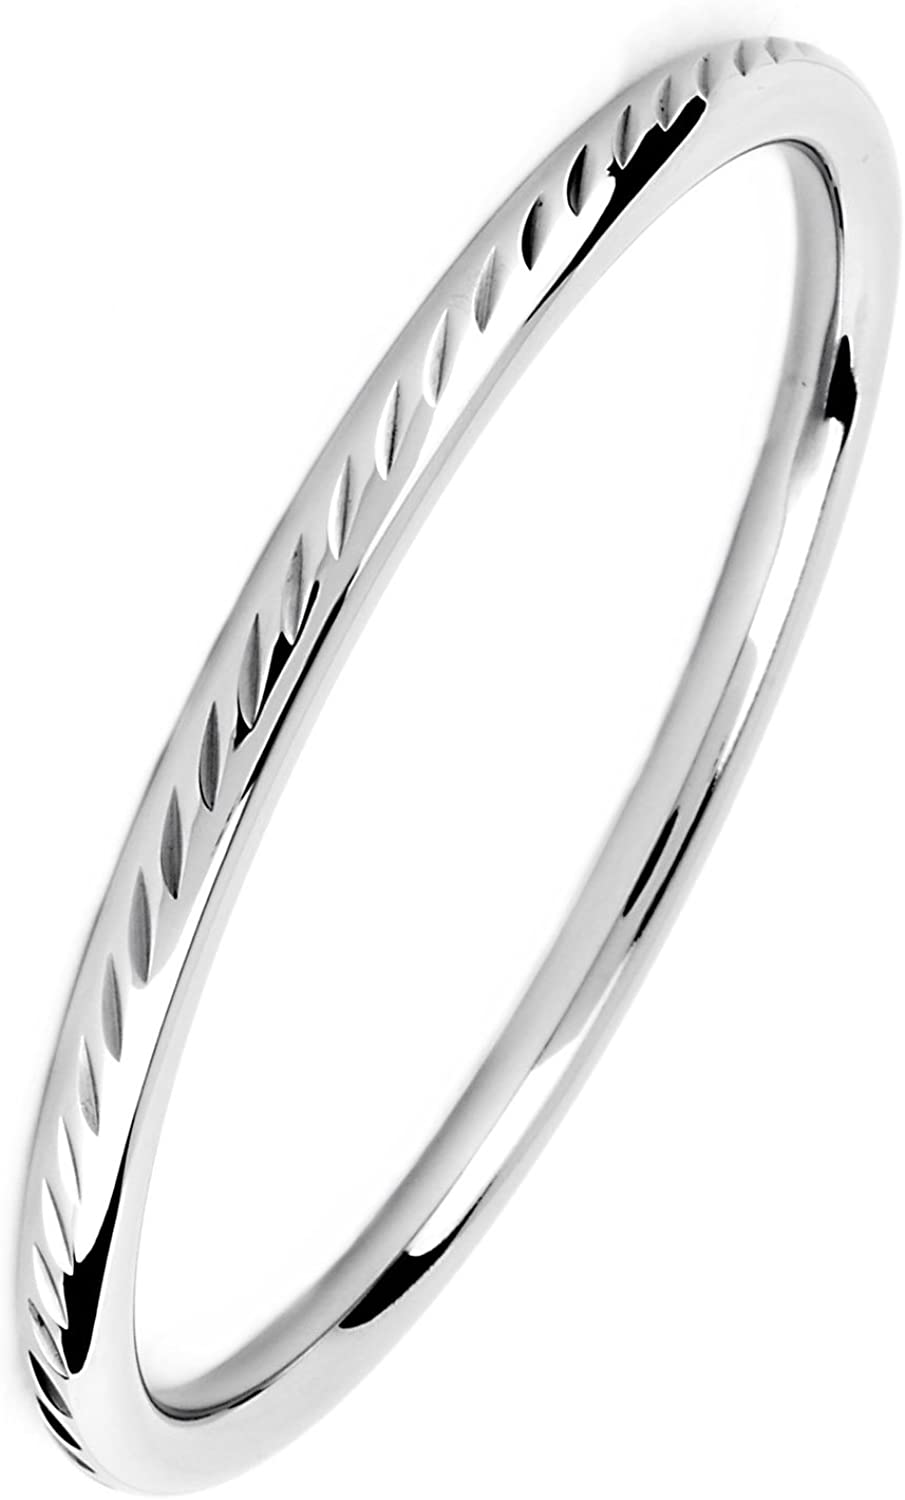 ELYA Bangle Bracelet 8 inch Polished Silver Stainless Steel Engraved with Your Choice Scalloped or Diamond Cut Pattern West Coast Jewelry